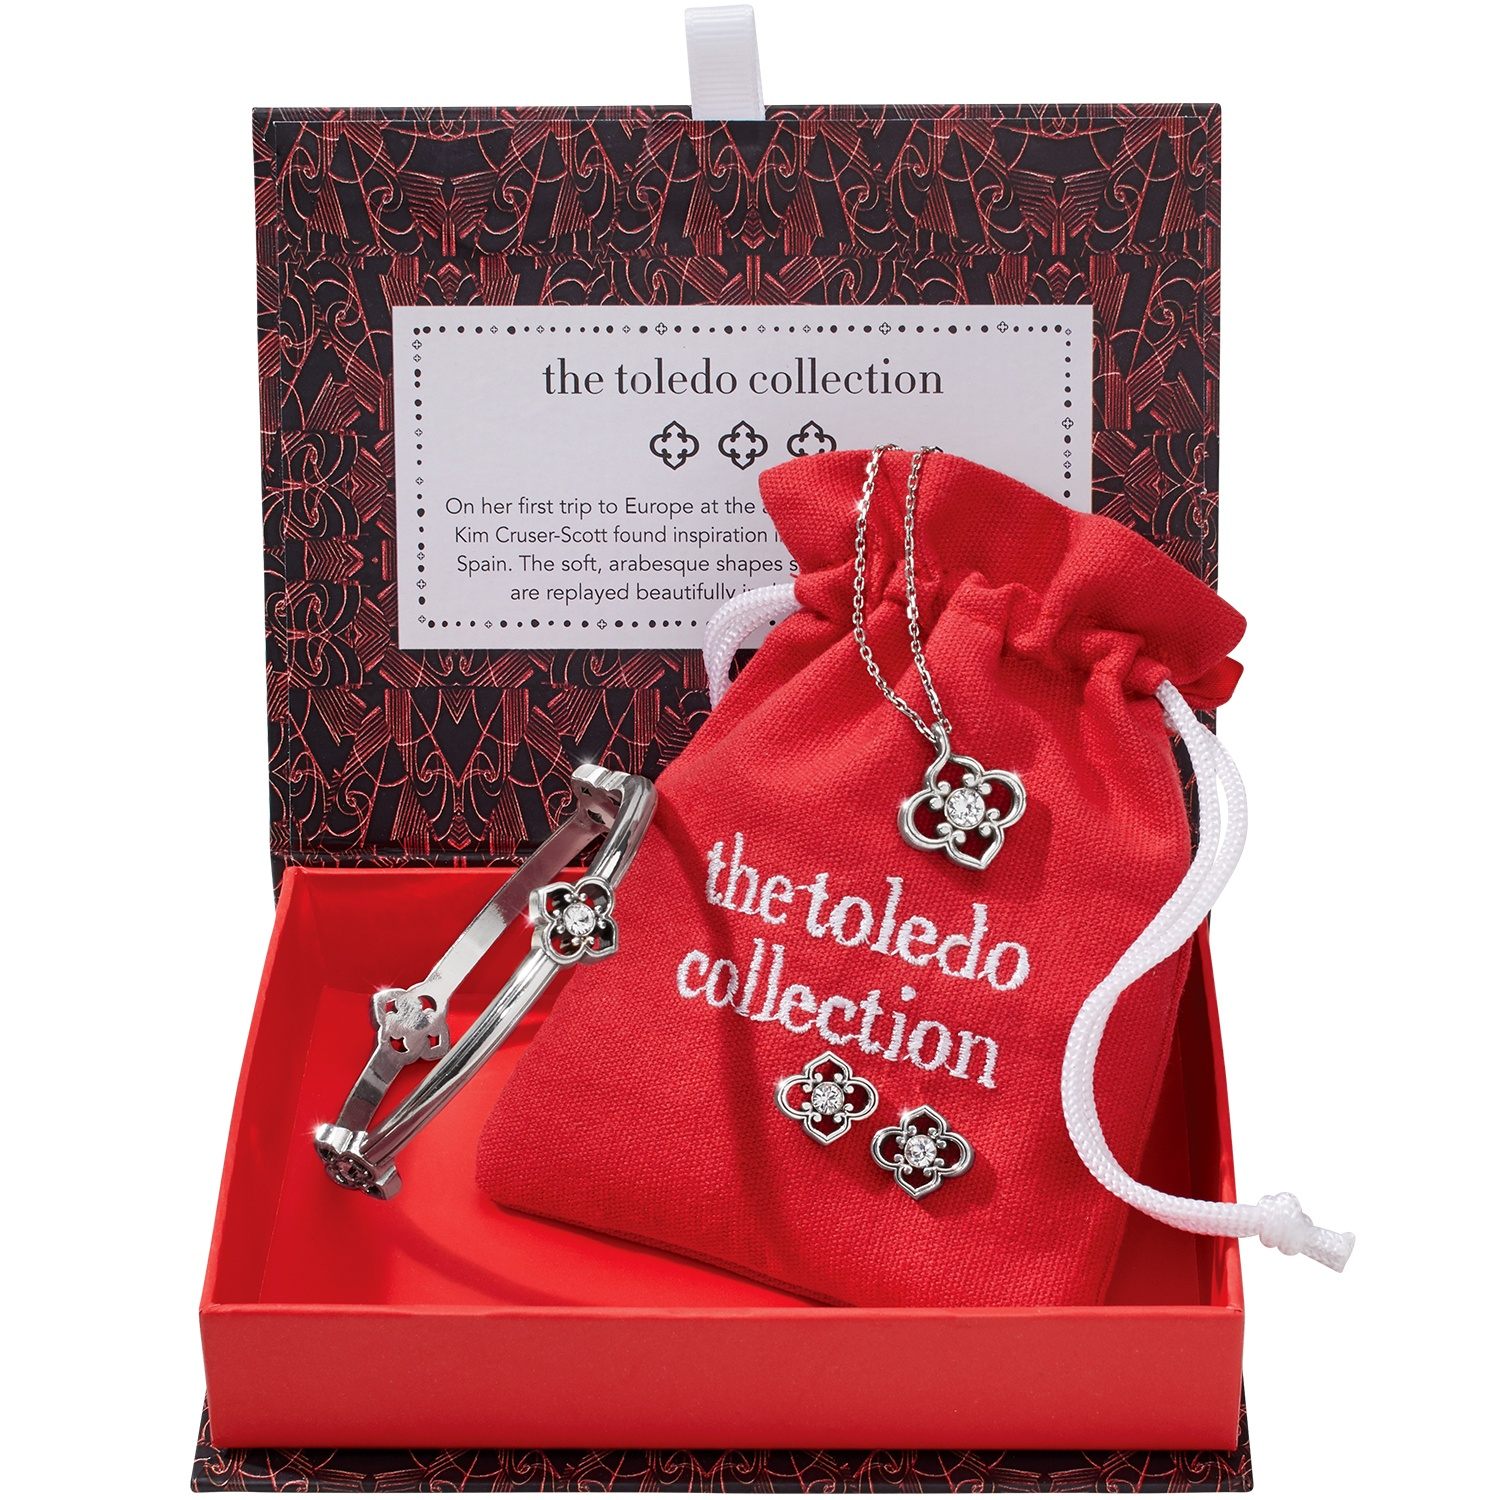 gifts from the heart cherished memories toledo collection box sets